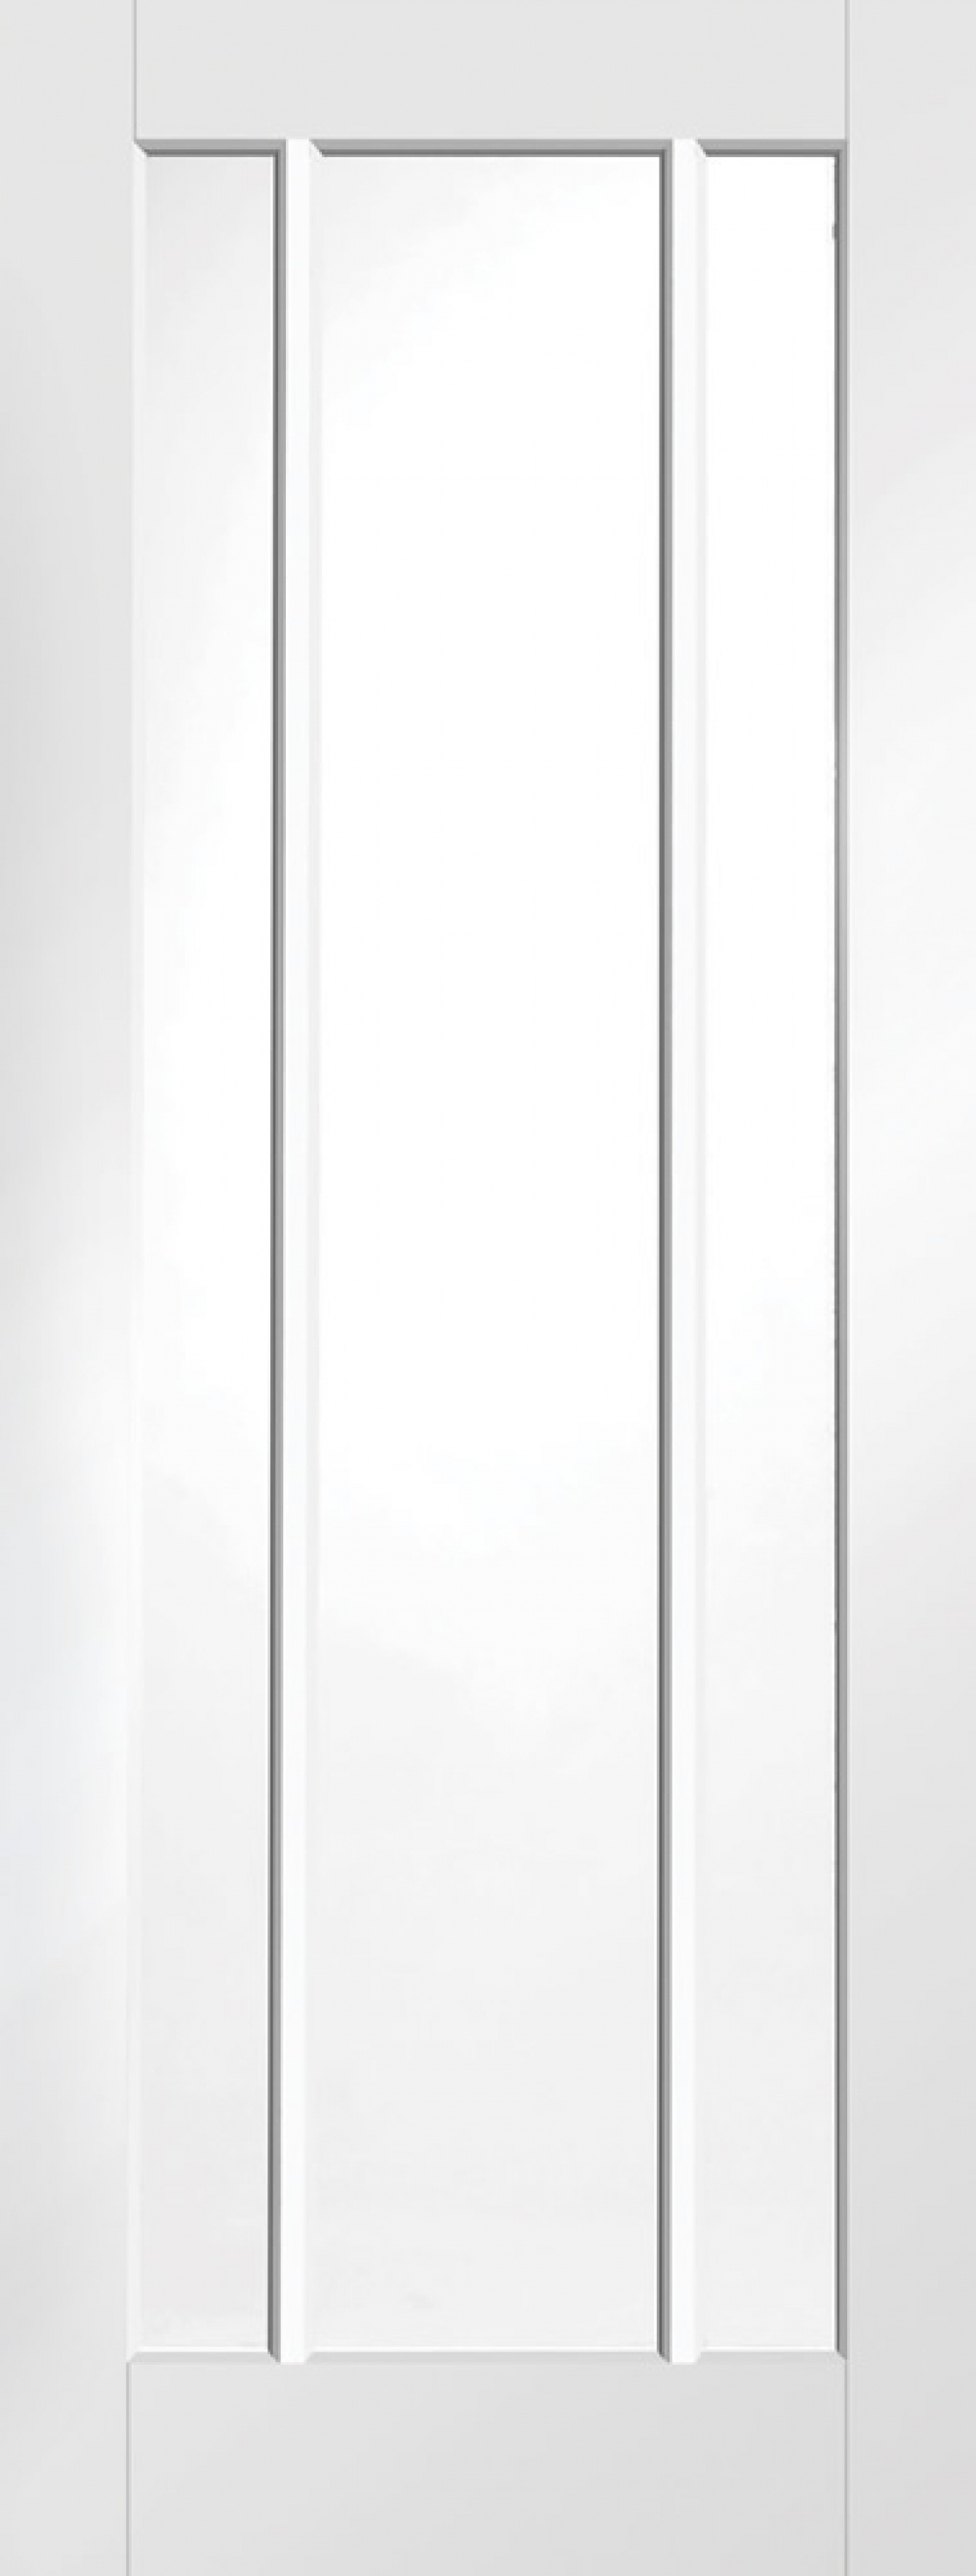 Glazed Door worcester white glazed doors with clear glass | vibrant doors